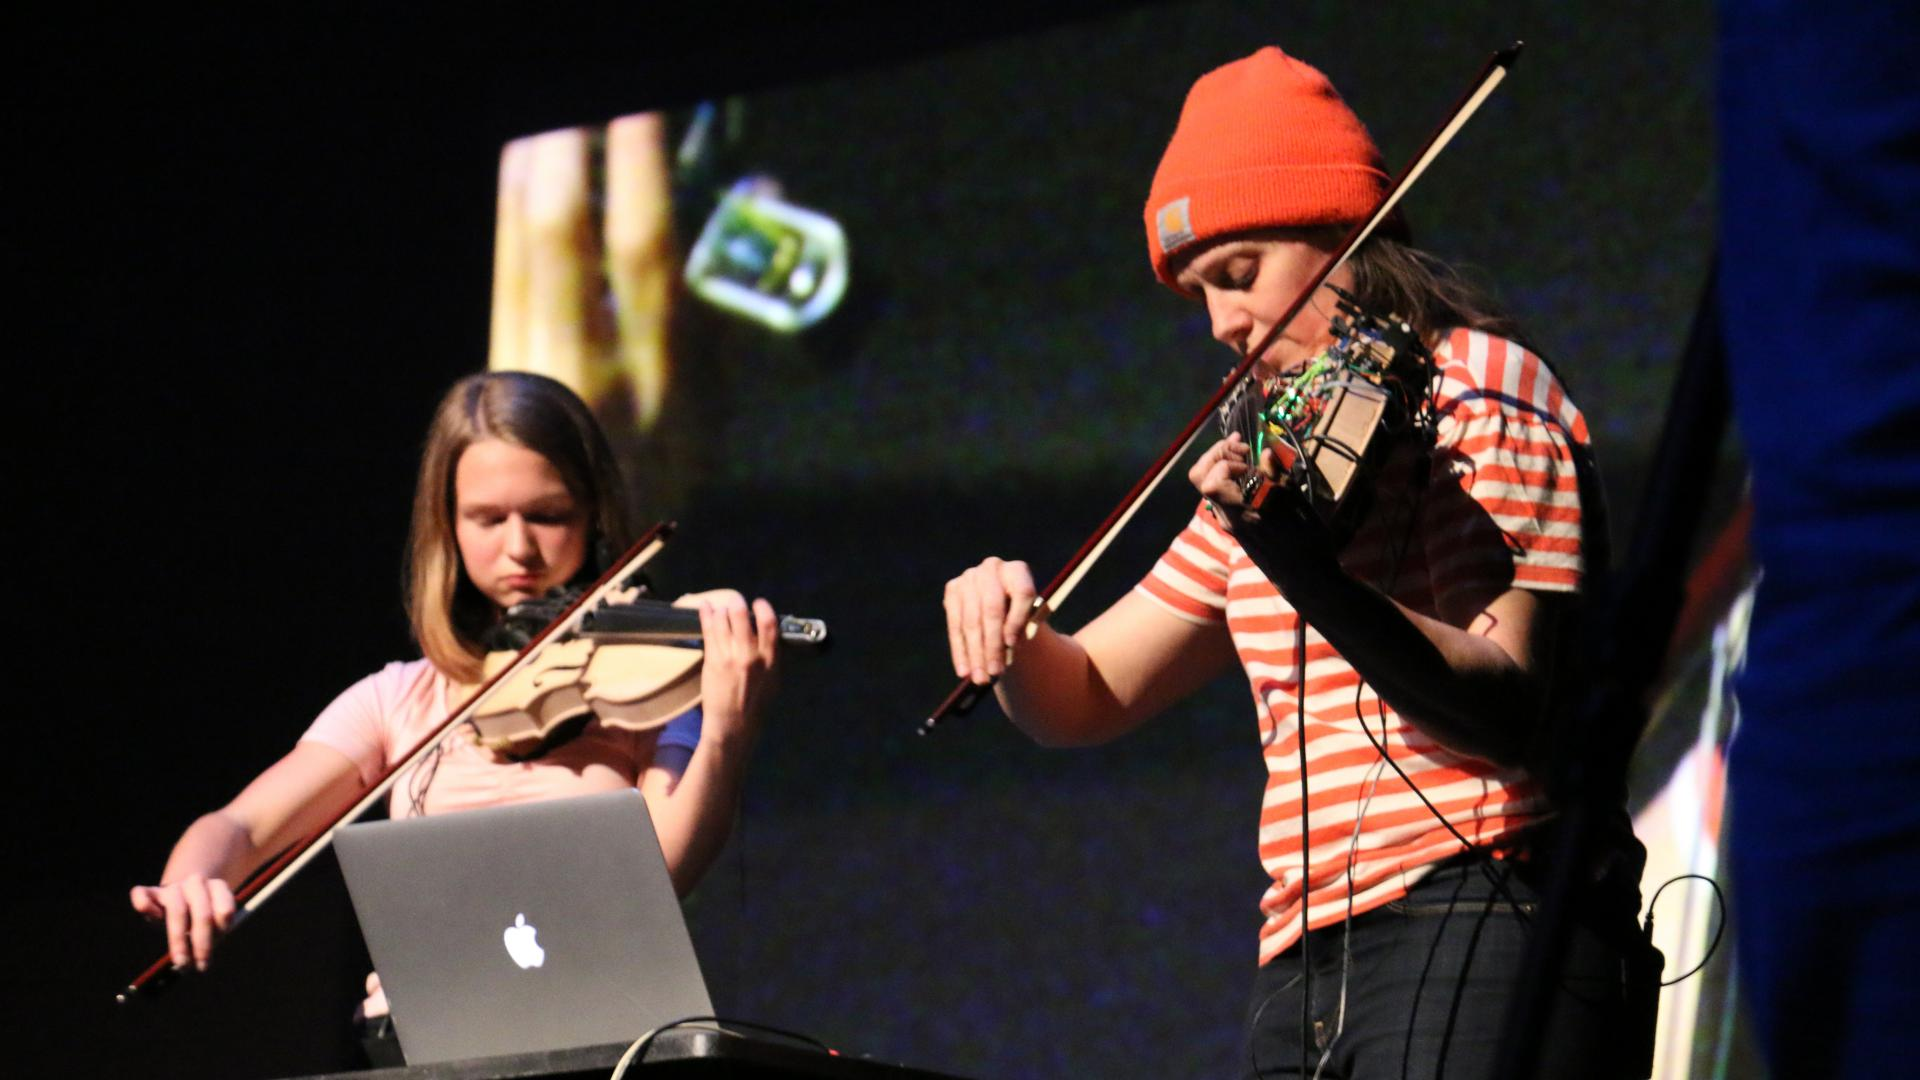 Svampolin creator Laurel S Purdue performs with the Svampolin on stage with BSMT student Ally Stout, who uses a normal violin.